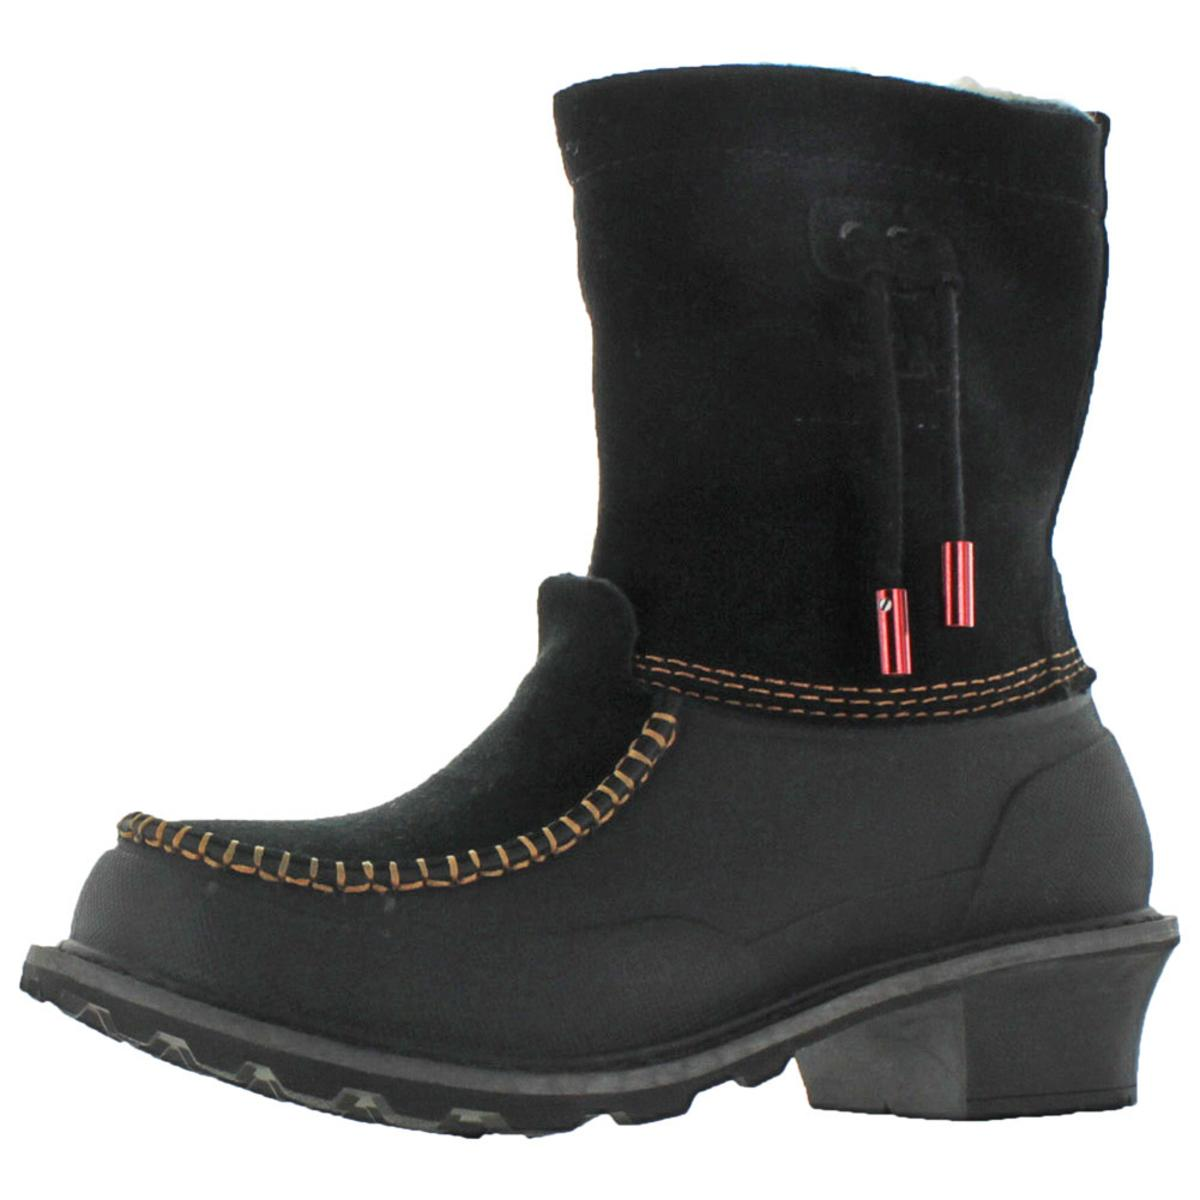 626ed6731884 Details about Woolrich Womens Fully Wooly Slip Black Snow Boots 6.5 Medium  (B